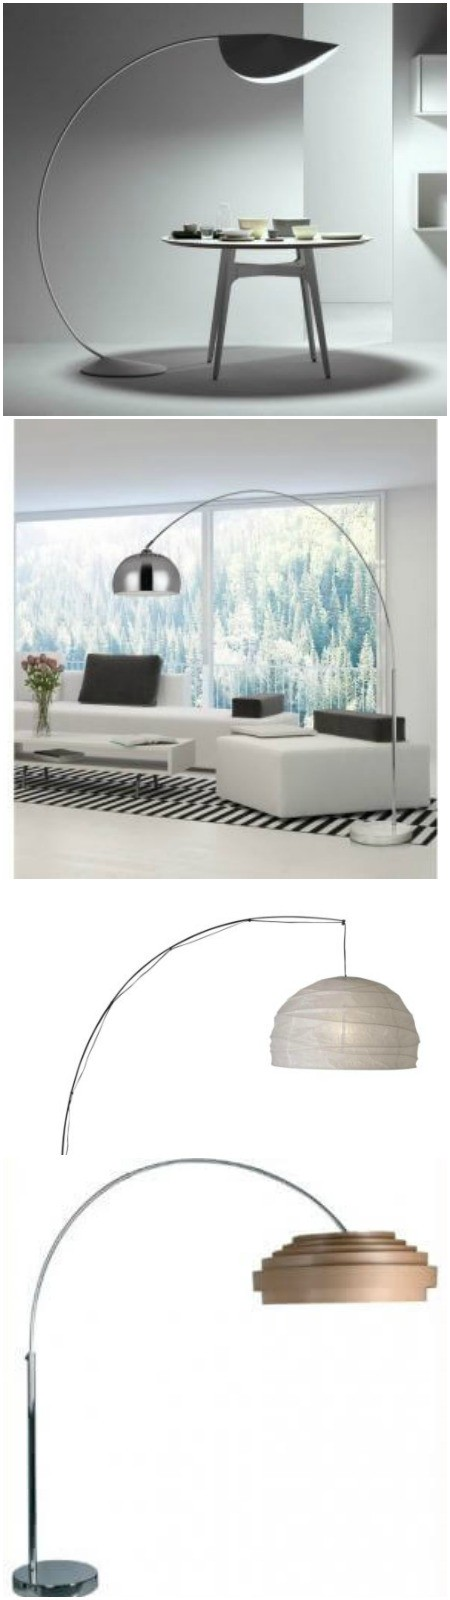 original arc floor lamps from ikea by